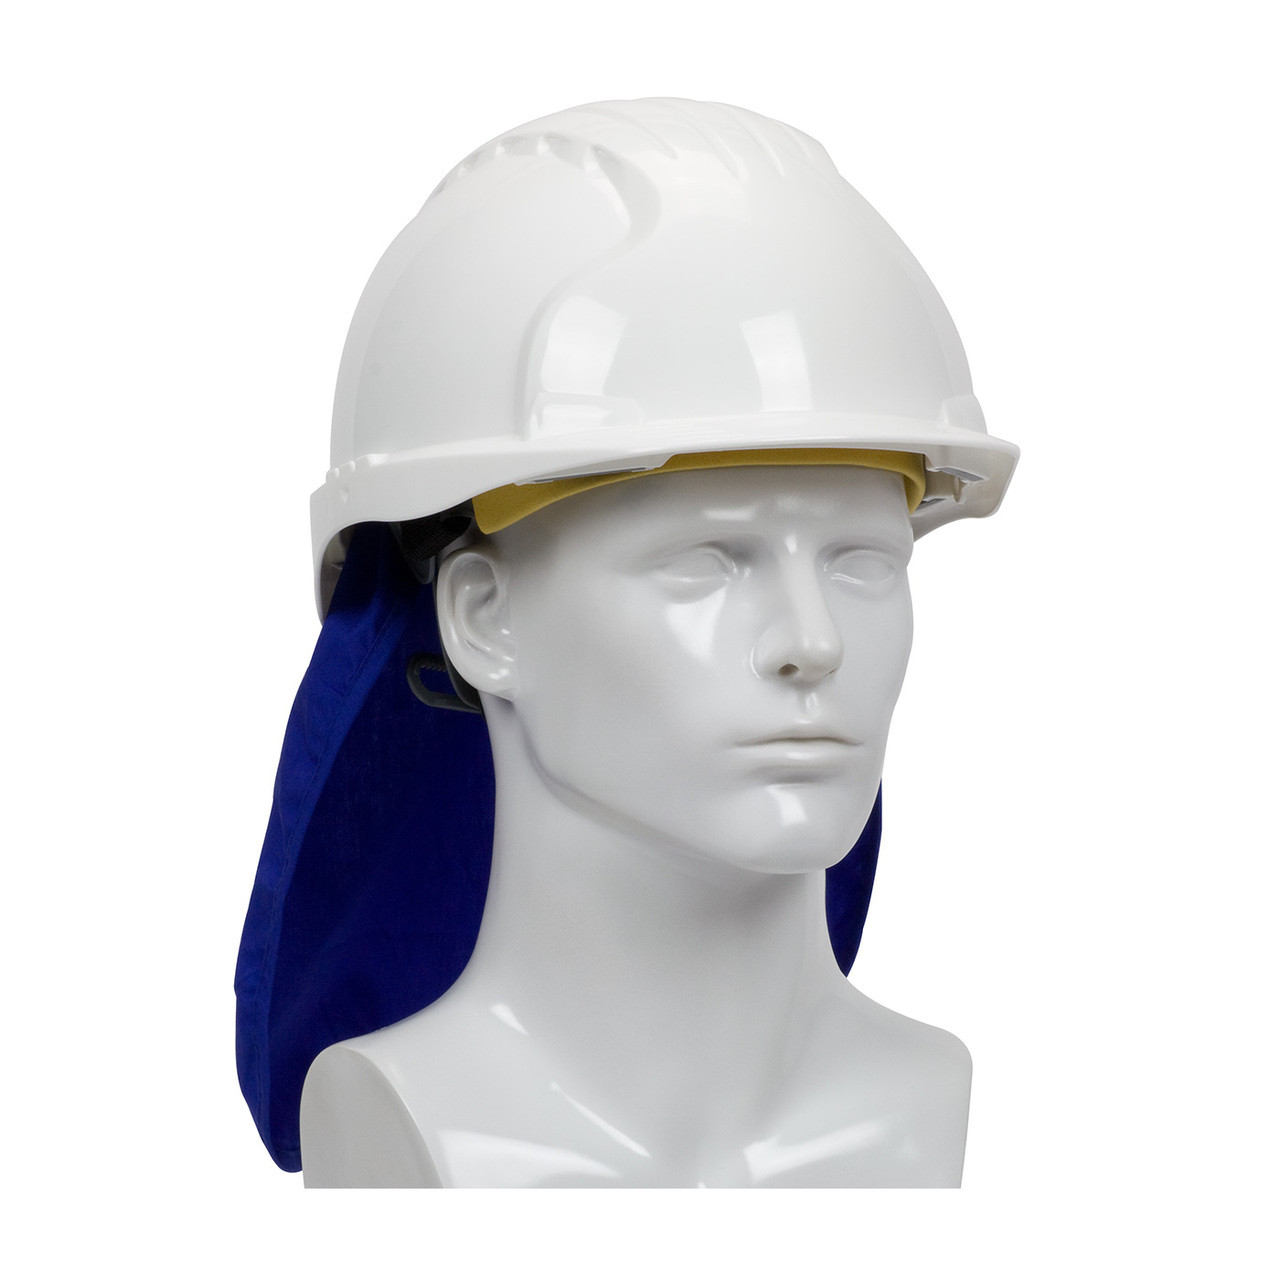 b6a238e28ad28 EZ-Cool® Evaporative Cooling Hard Hat Pad with Neck Shade - BBL Safety